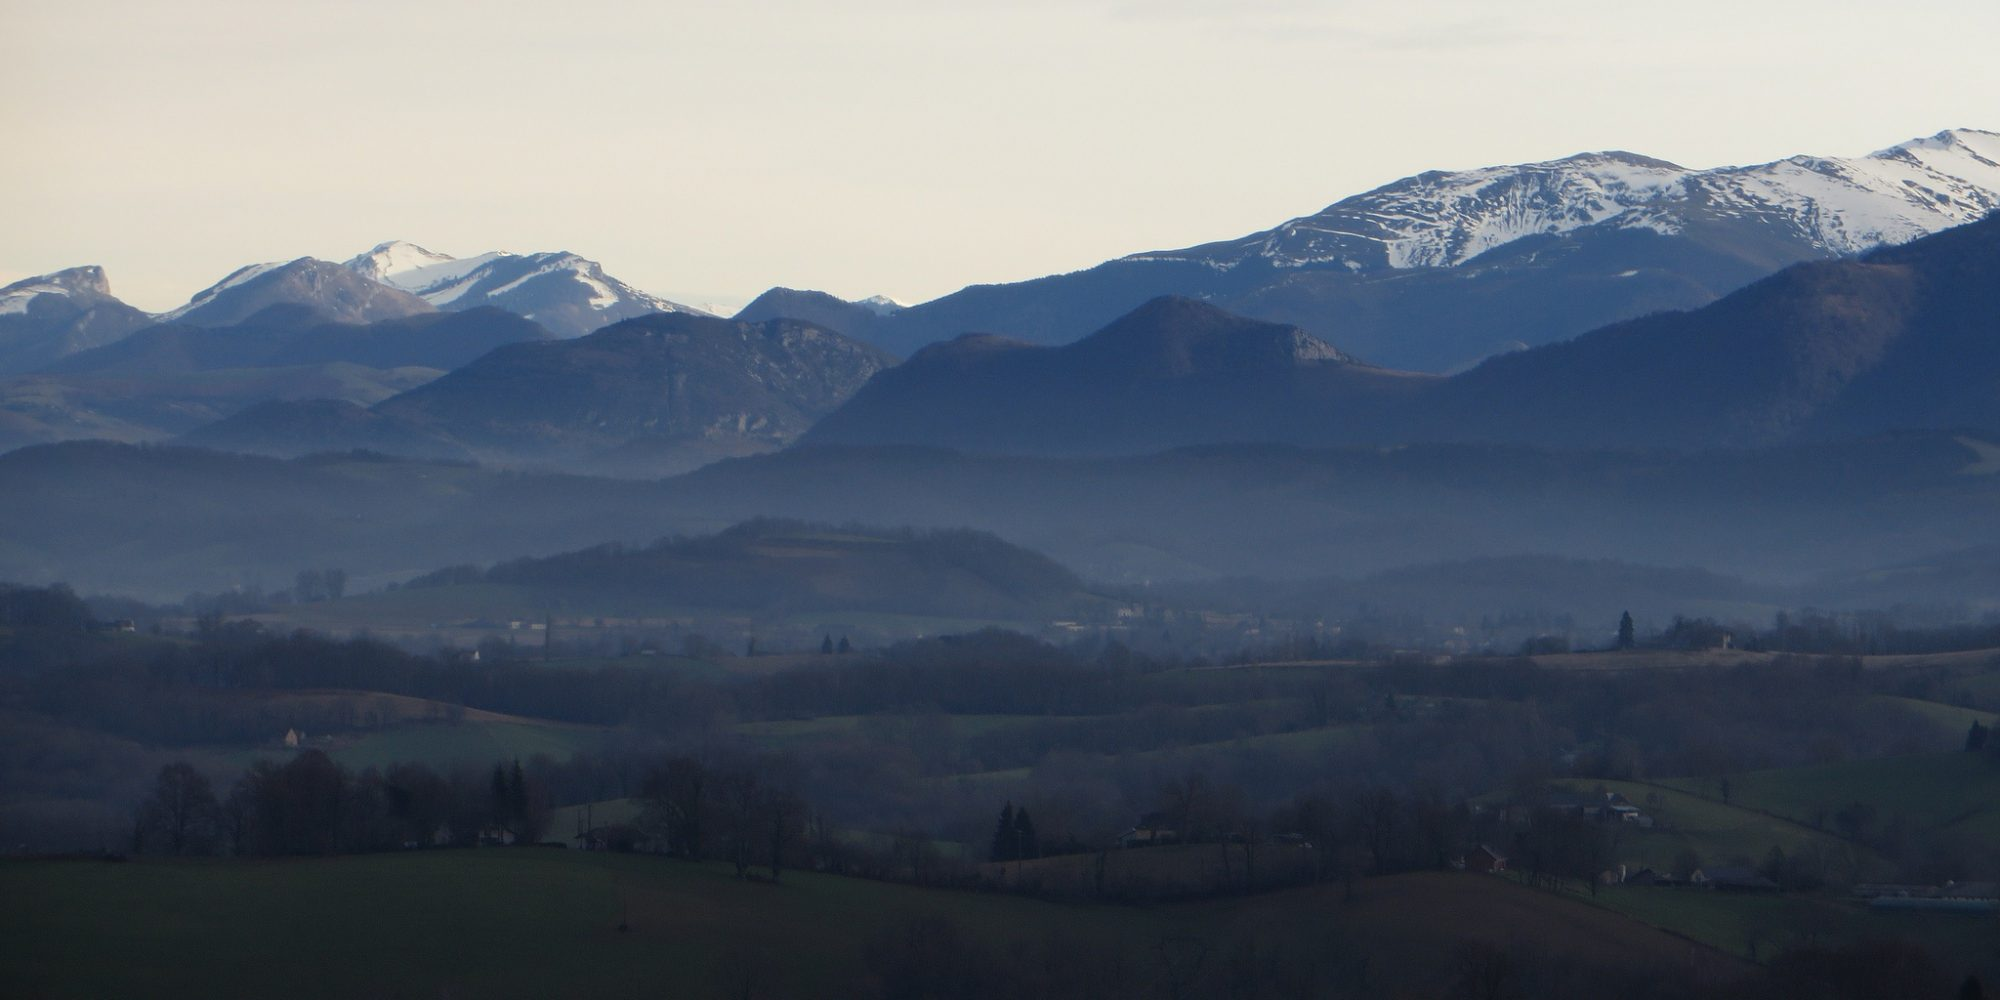 Image of mountains and glaciers in the Pyrénées